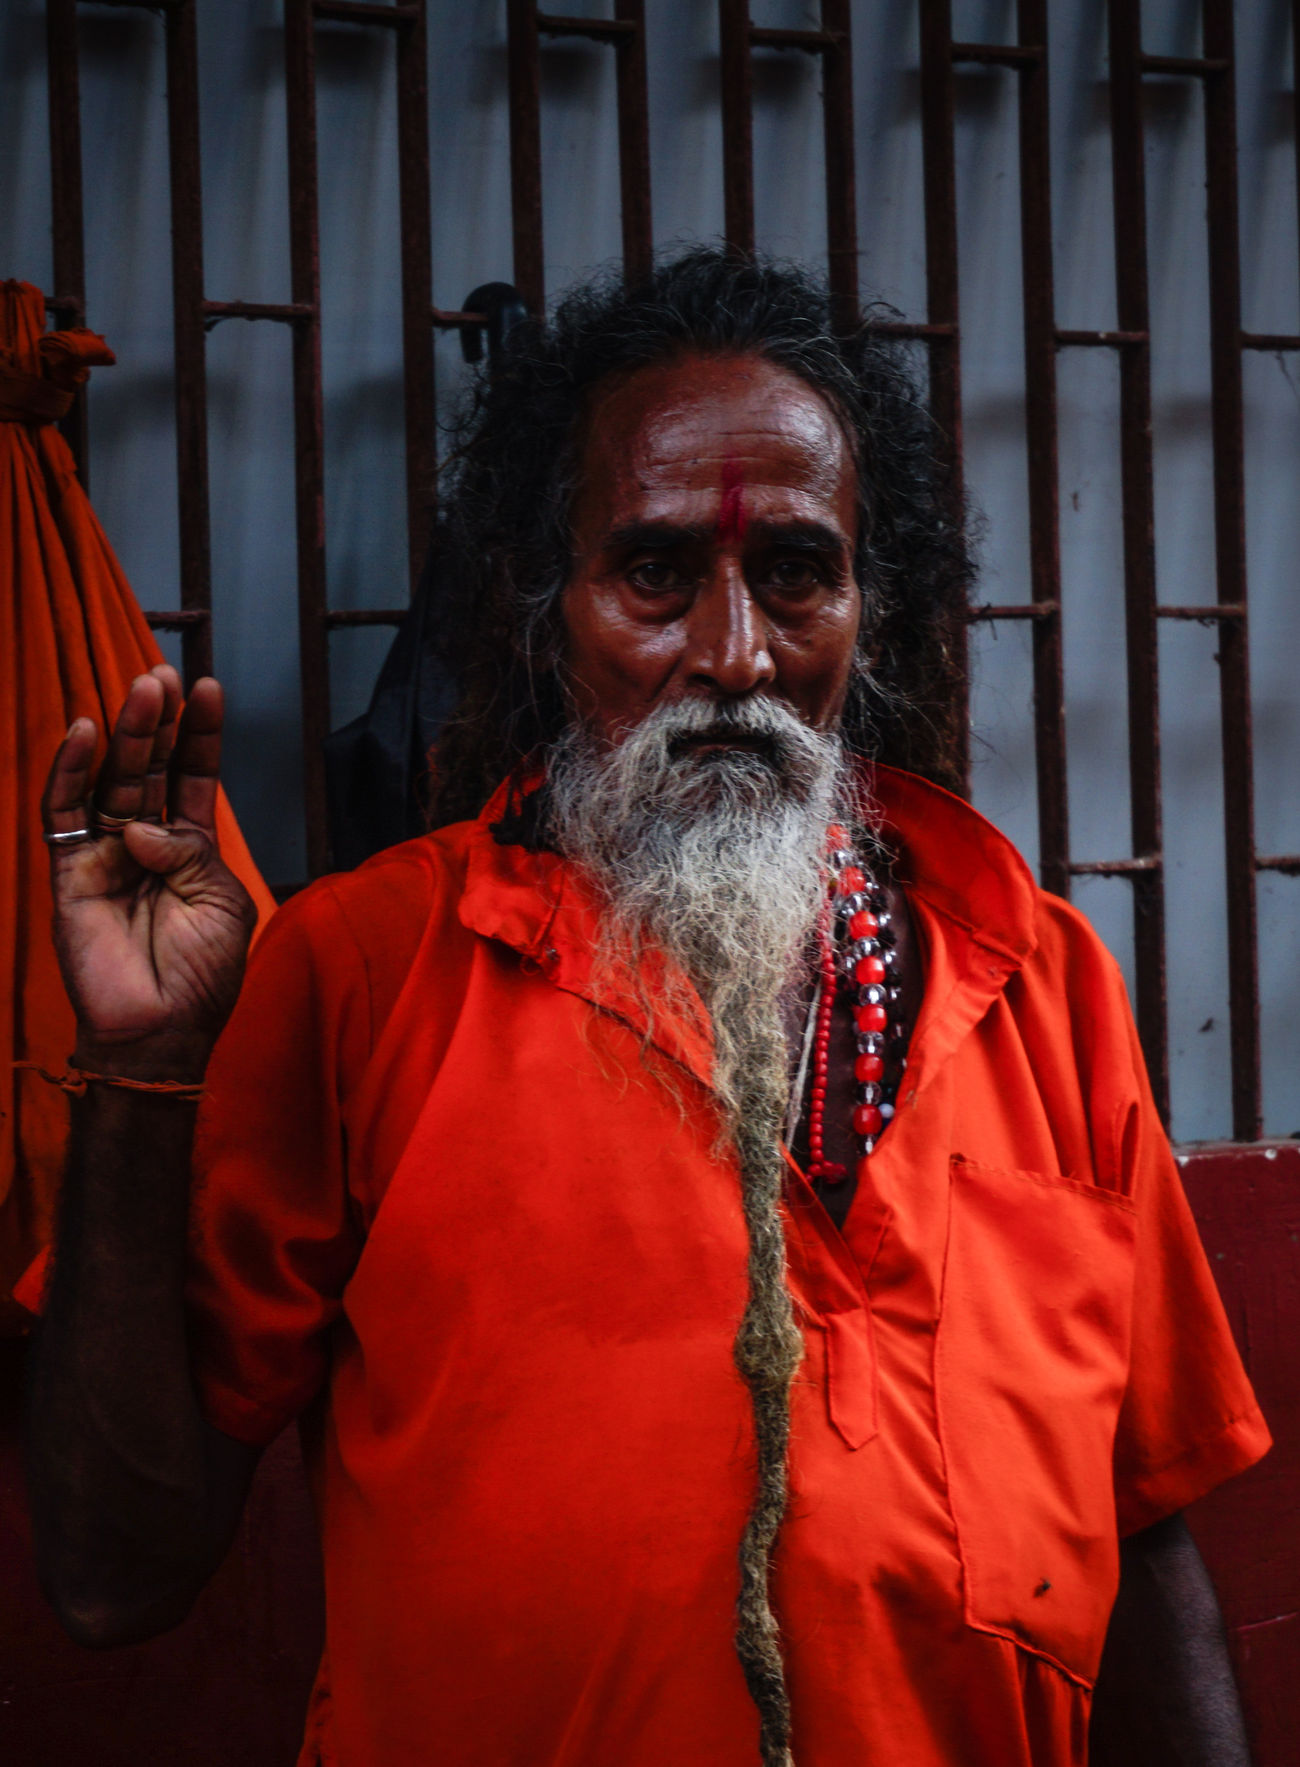 Adult Adults Only Assignments Beard Bright Colours Devotion Emotions Captured Exploring Style Guwahati Human Body Part India Kamakhya Temple Looking At Camera One Man Only One Person Only Men People Portrait Religion Senior Adult Senior Men